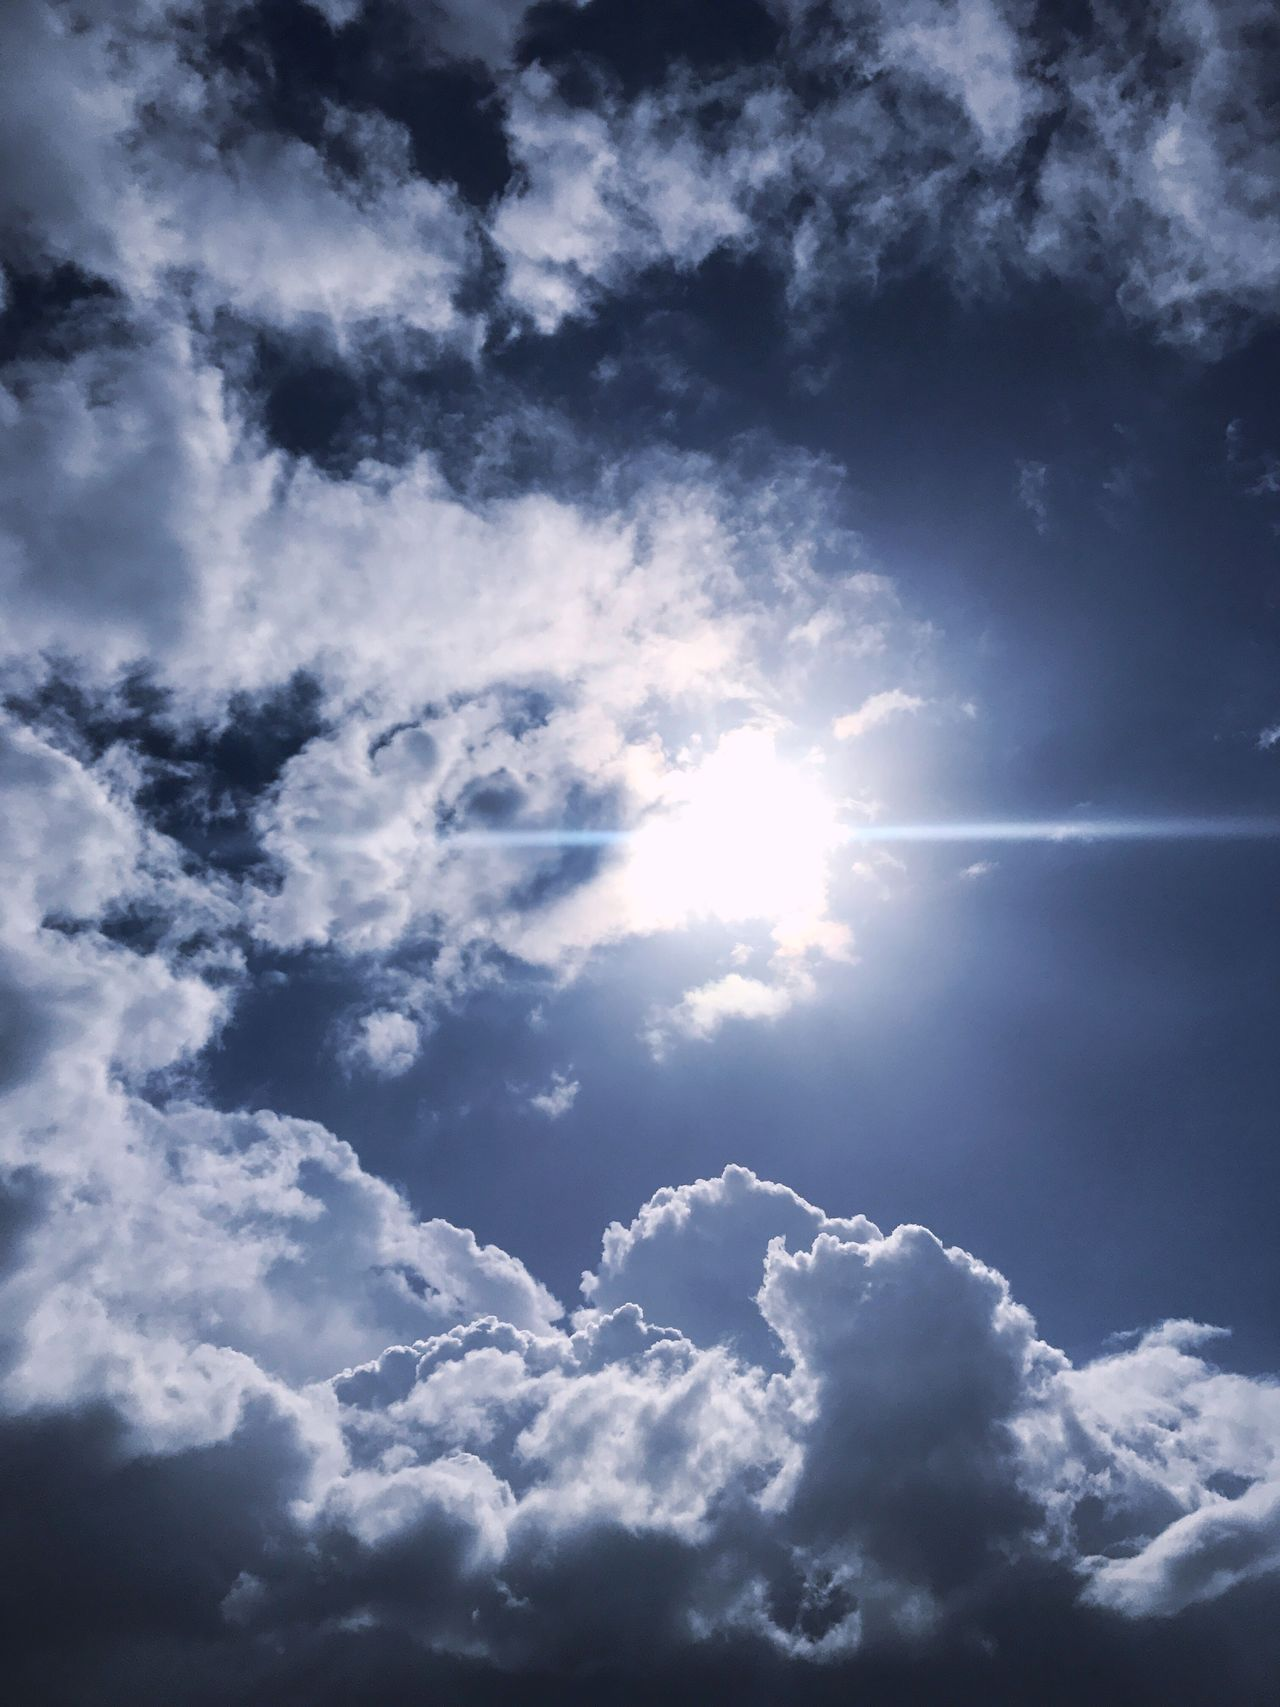 Looking up Bermuda Window To The Sky Sky Cloud - Sky Nature Sun Sunlight Sunbeam Tranquility Beauty In Nature Low Angle View No People Cloudscape Idyllic Backgrounds Fluffy Scenics Cumulus Cloud Day Outdoors Tranquil Scene Sky Only